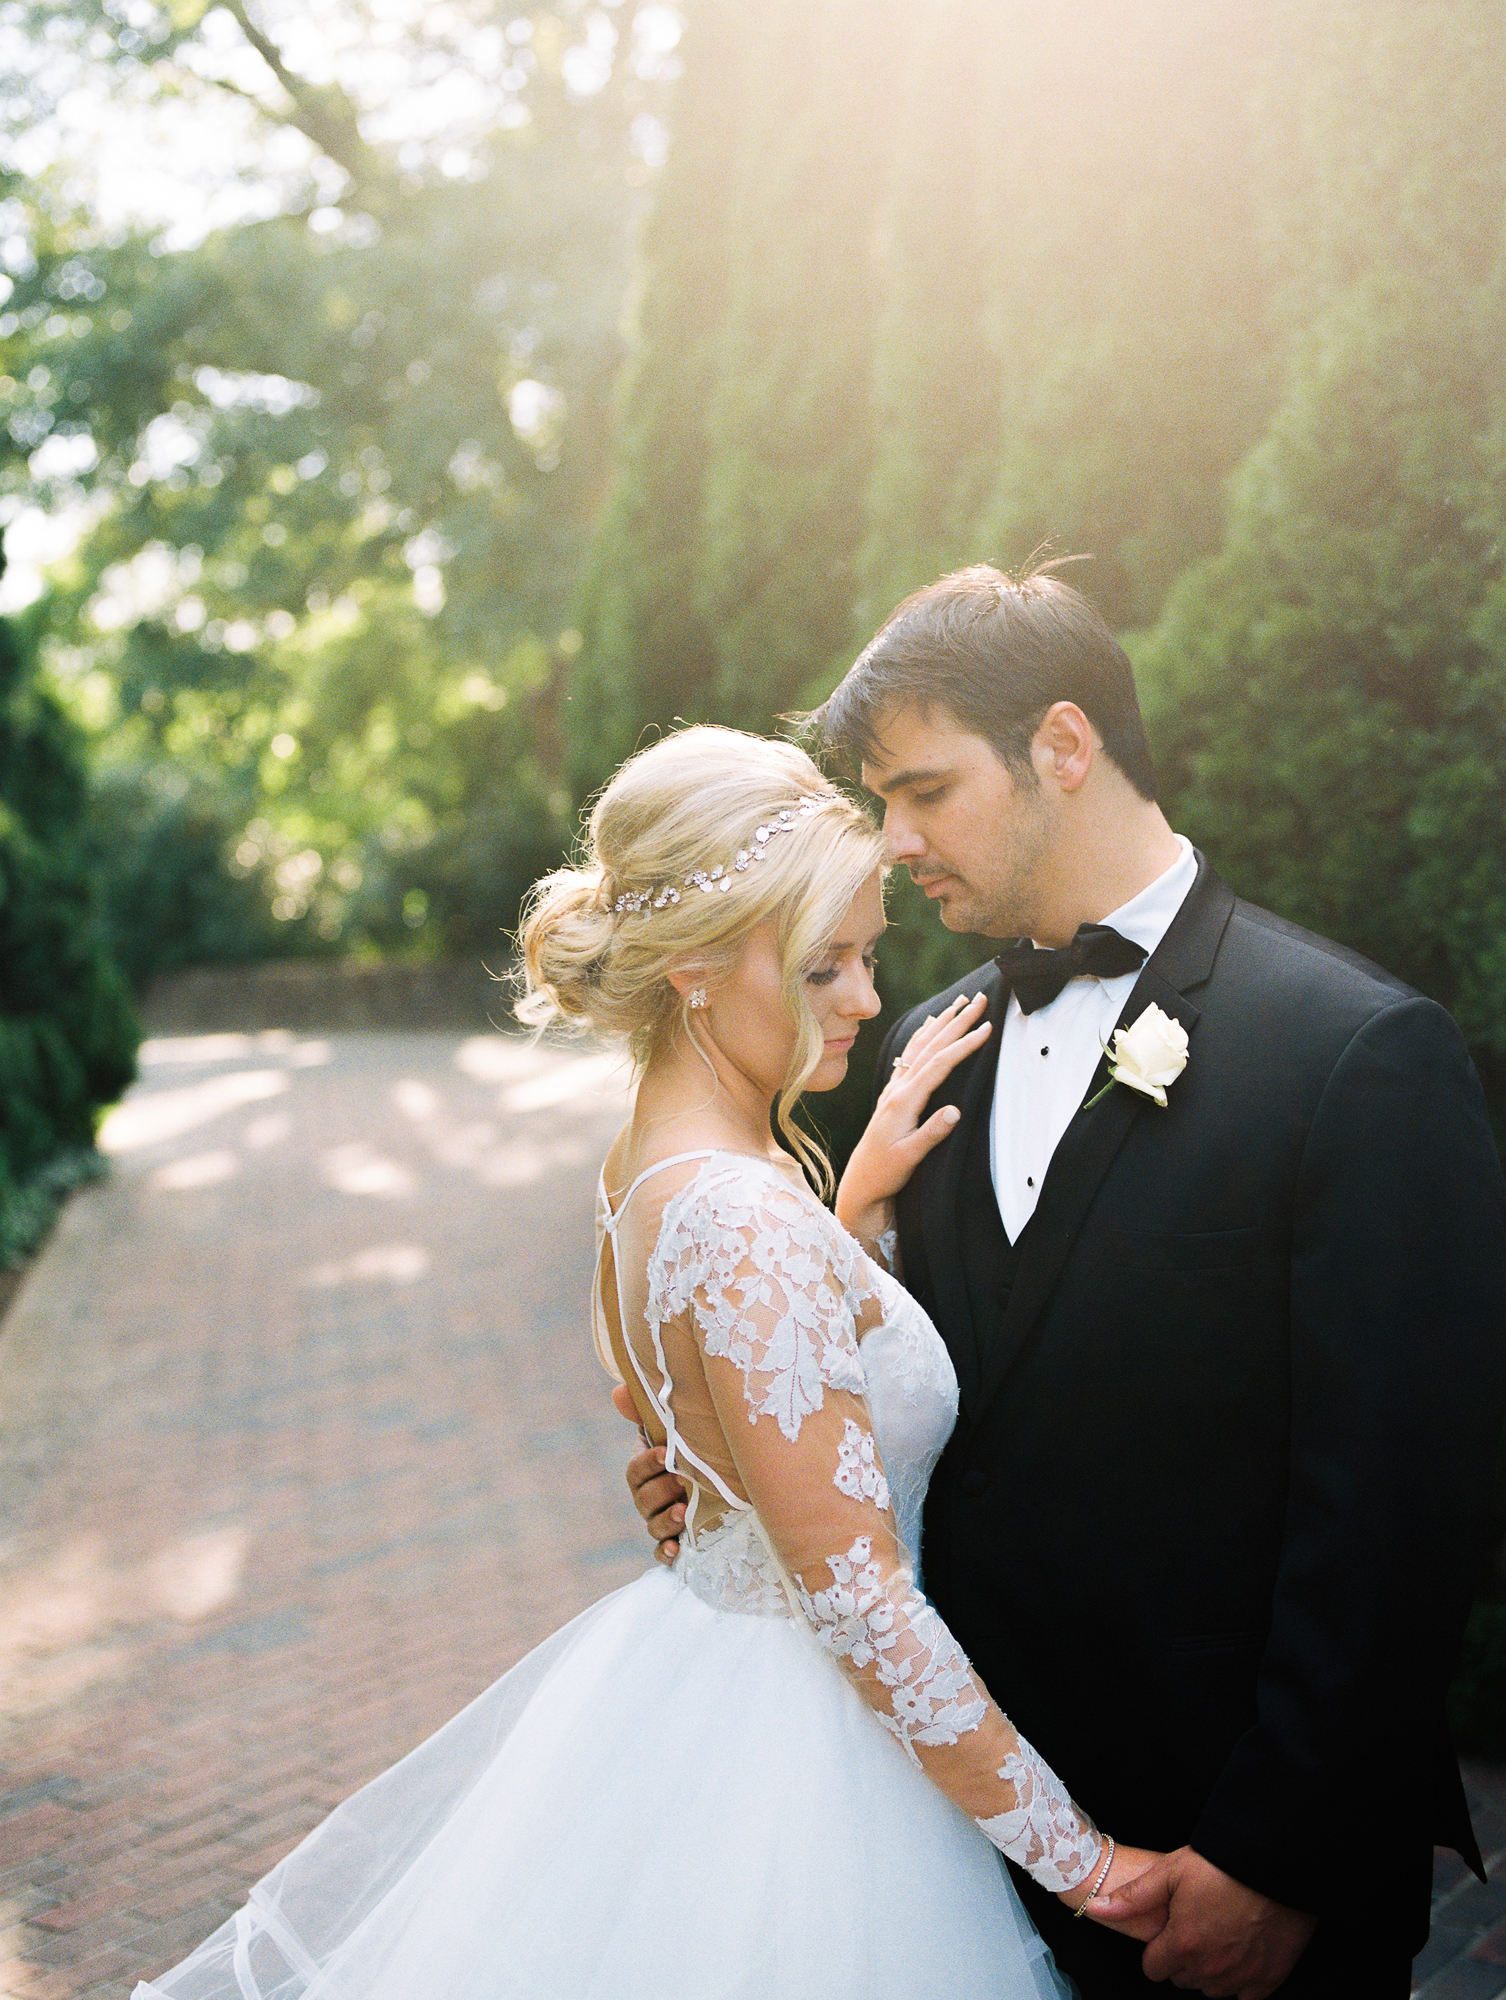 Colleen and Patrick - Crescent Club Wedding  - Memphis, TN - © Kaitlyn Stoddard-Carter-5.jpg